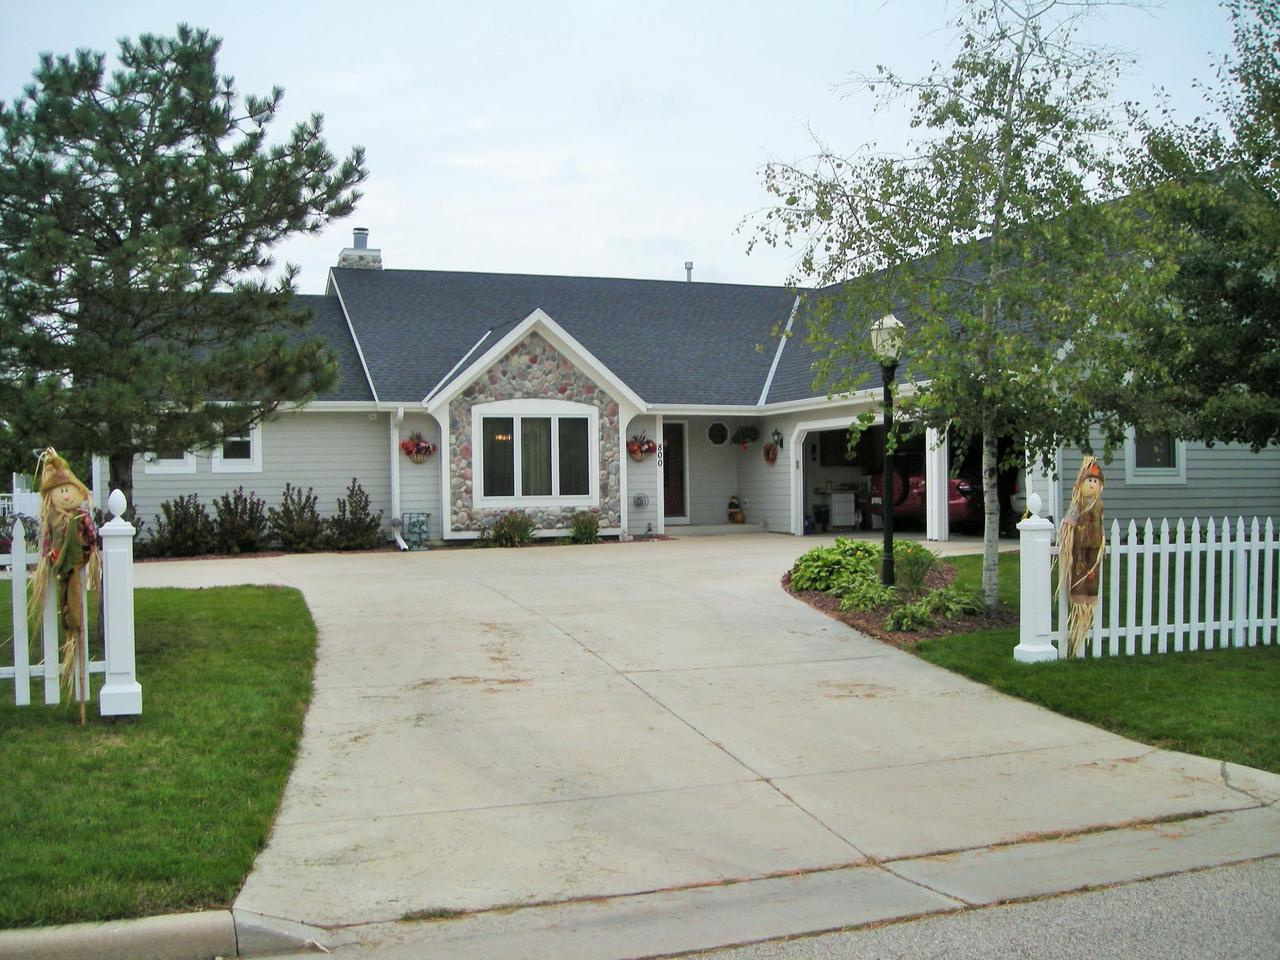 Oconomowoc Wi Homes With In Law Suite For Sale Realty Solutions Group